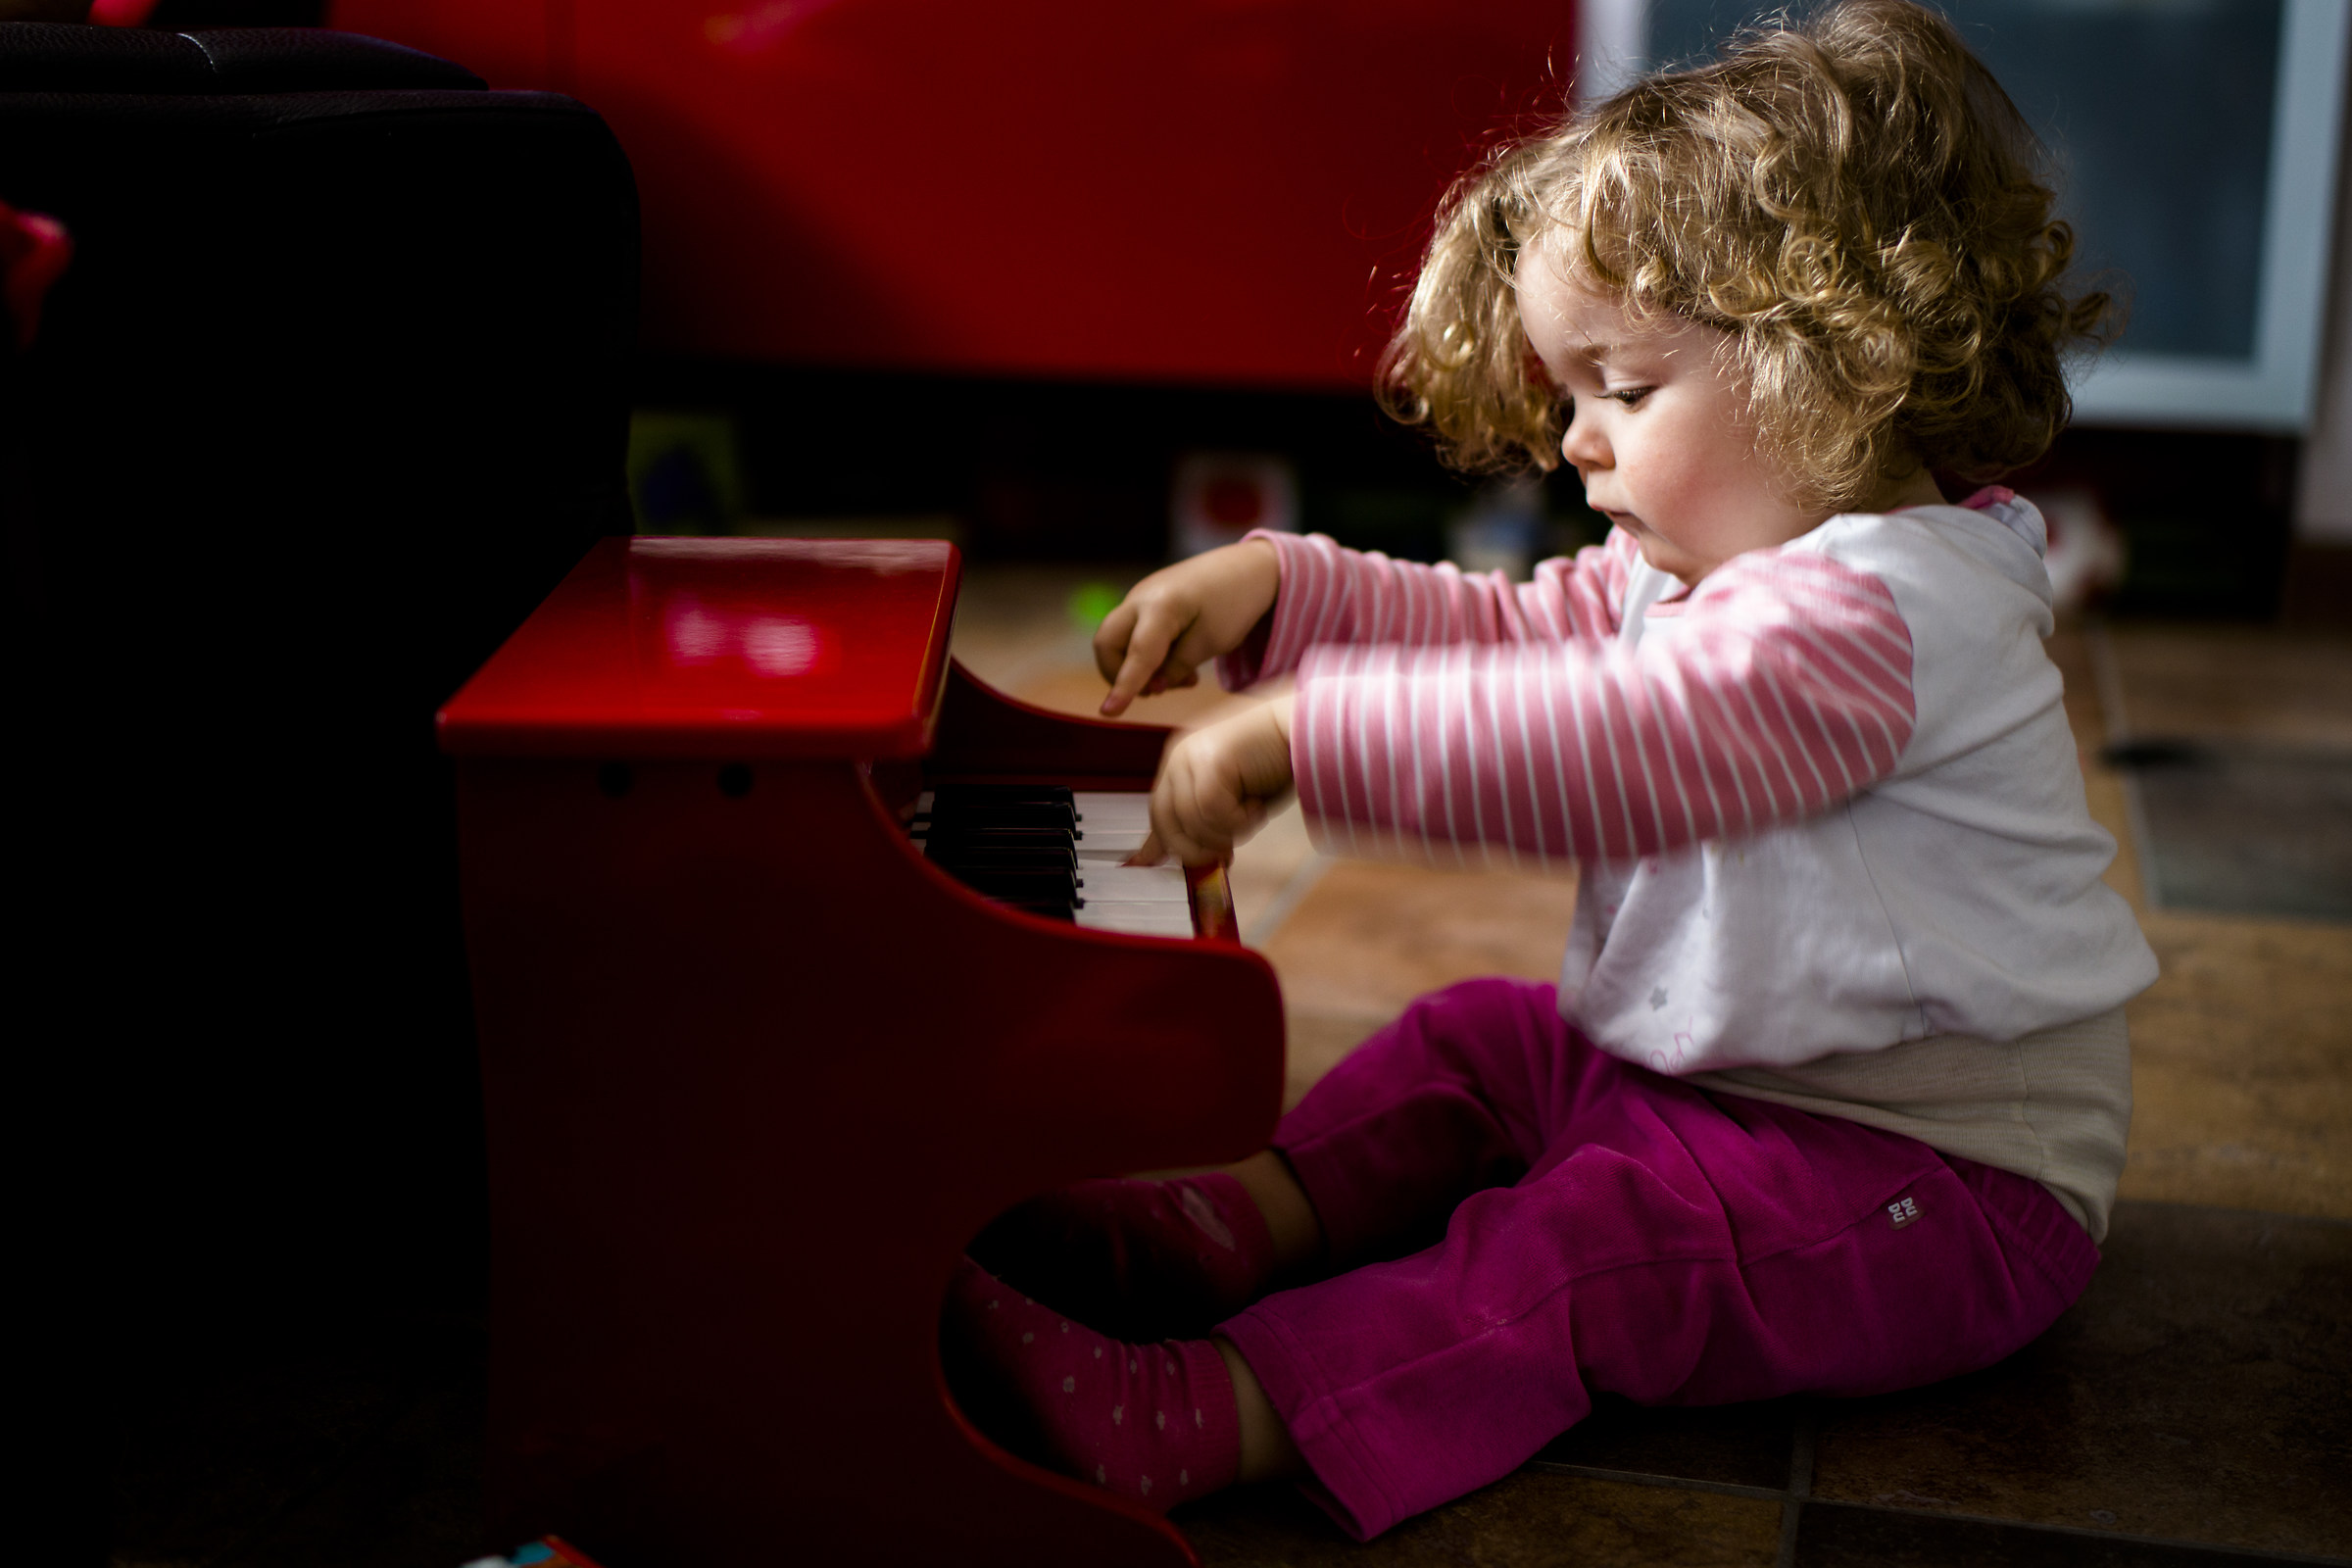 Piano lessons...